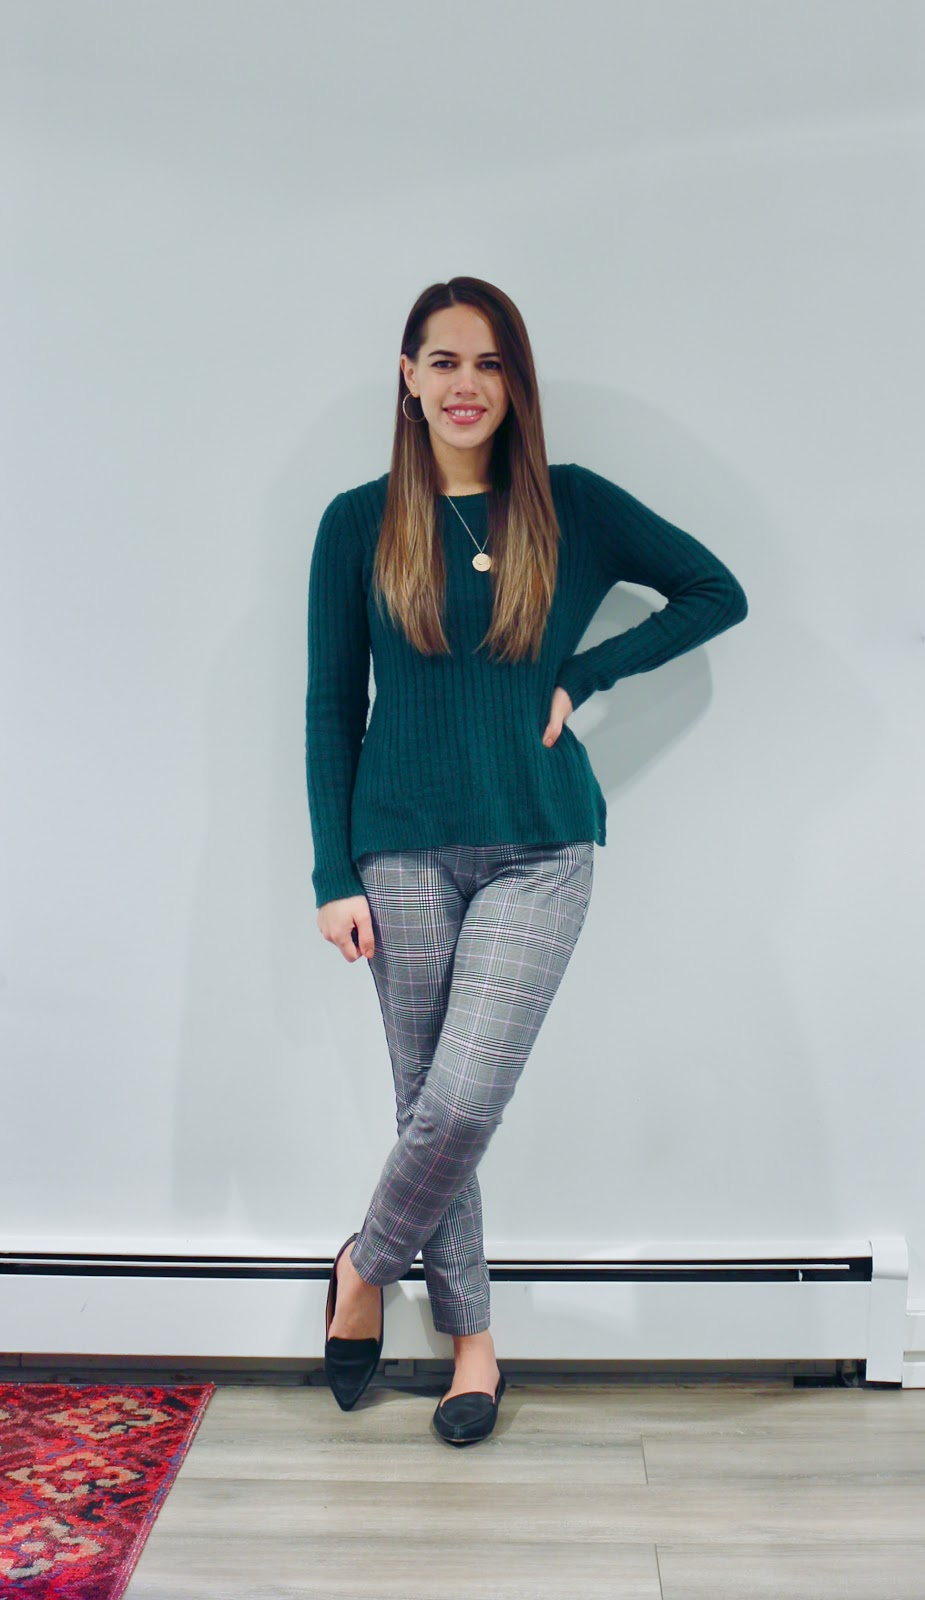 Jules in Flats - Green Sweater + Plaid Pants (Business Casual Winter Workwear on a Budget)